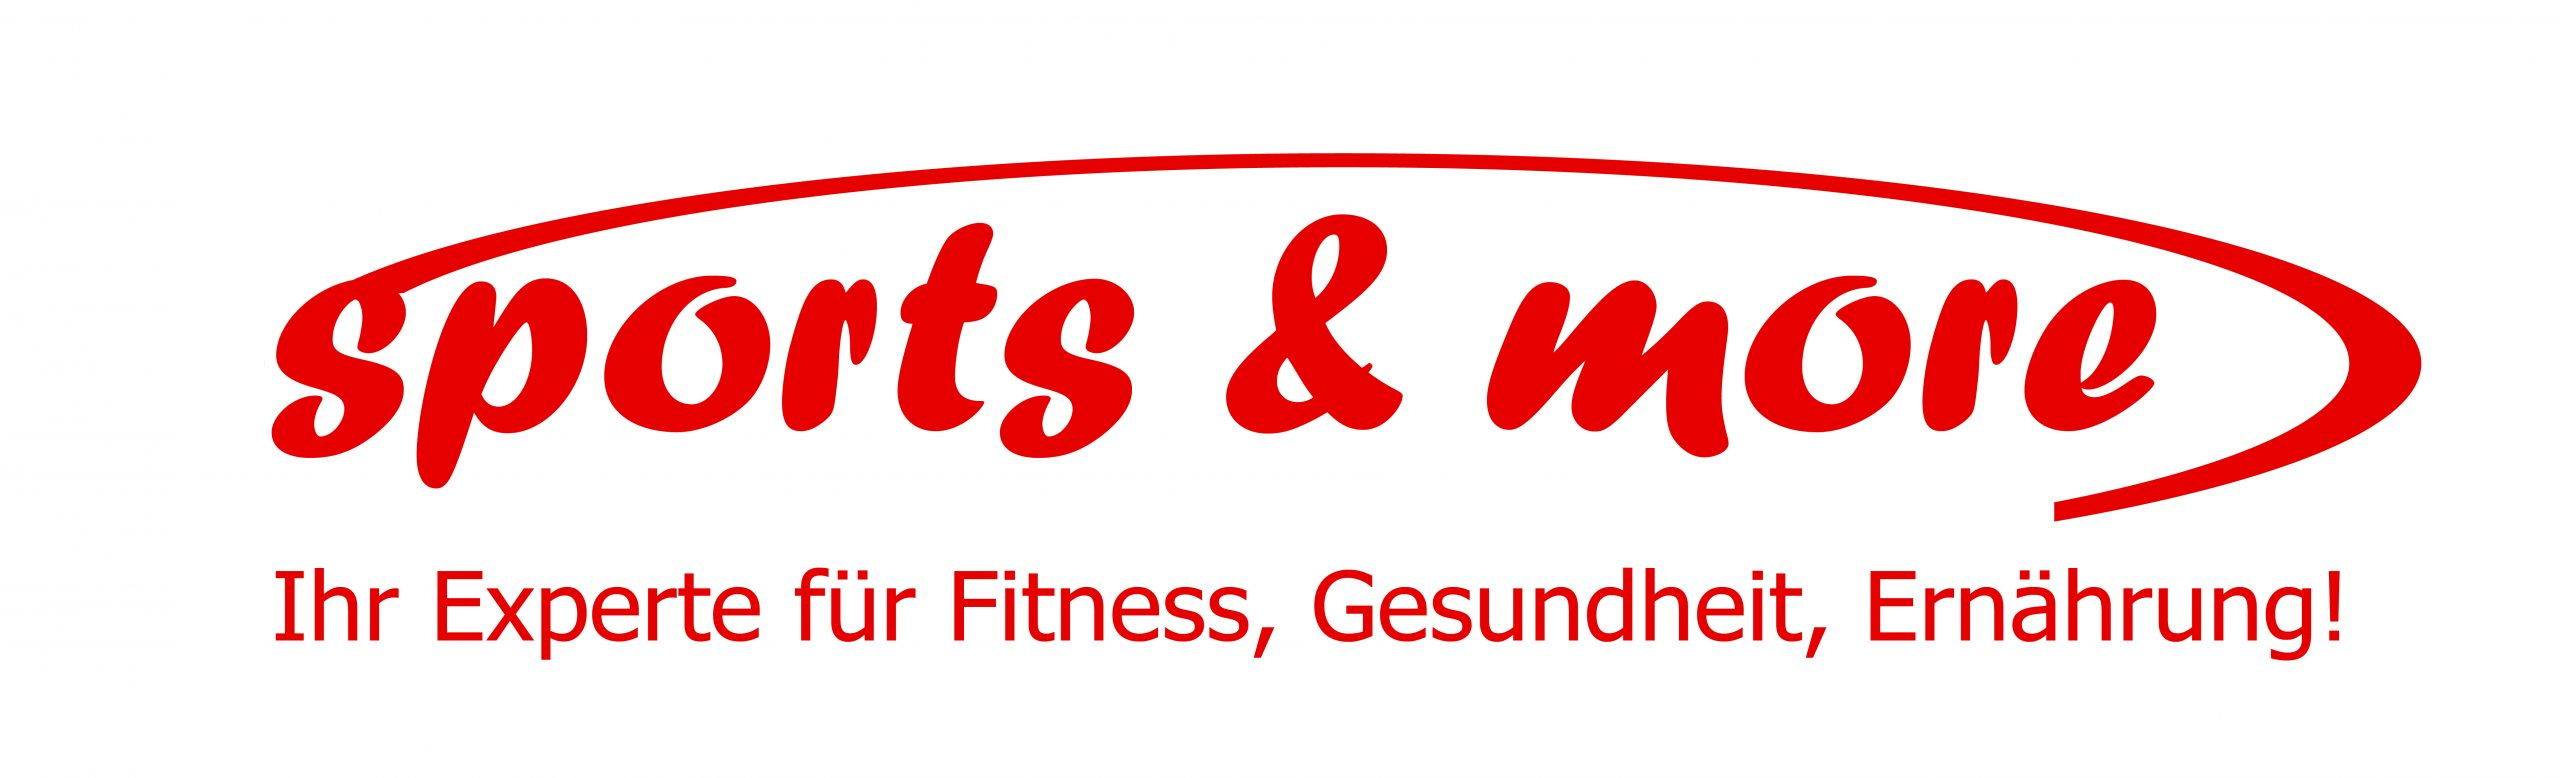 Sports & more Neuwied